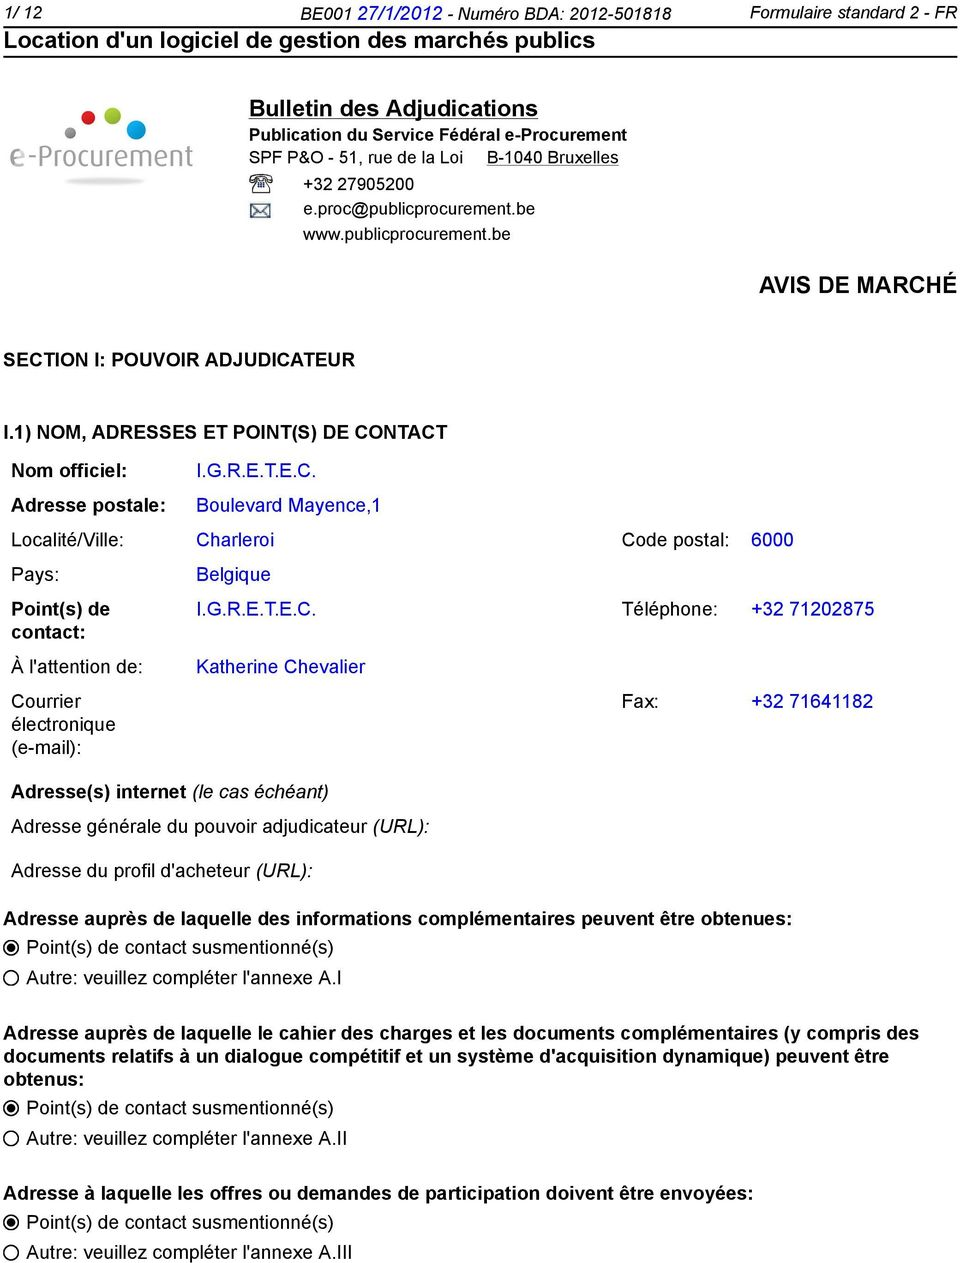 É SECTION I: POUVOIR ADJUDICATEUR I.1) NOM, ADRESSES ET POINT(S) DE CONTACT Nom officiel: Adresse postale: I.G.R.E.T.E.C. Boulevard Mayence,1 Localité/Ville: Charleroi Code postal: 6000 Pays: Point(s) de contact: À l'attention de: Courrier électronique (e-mail): Belgique I.